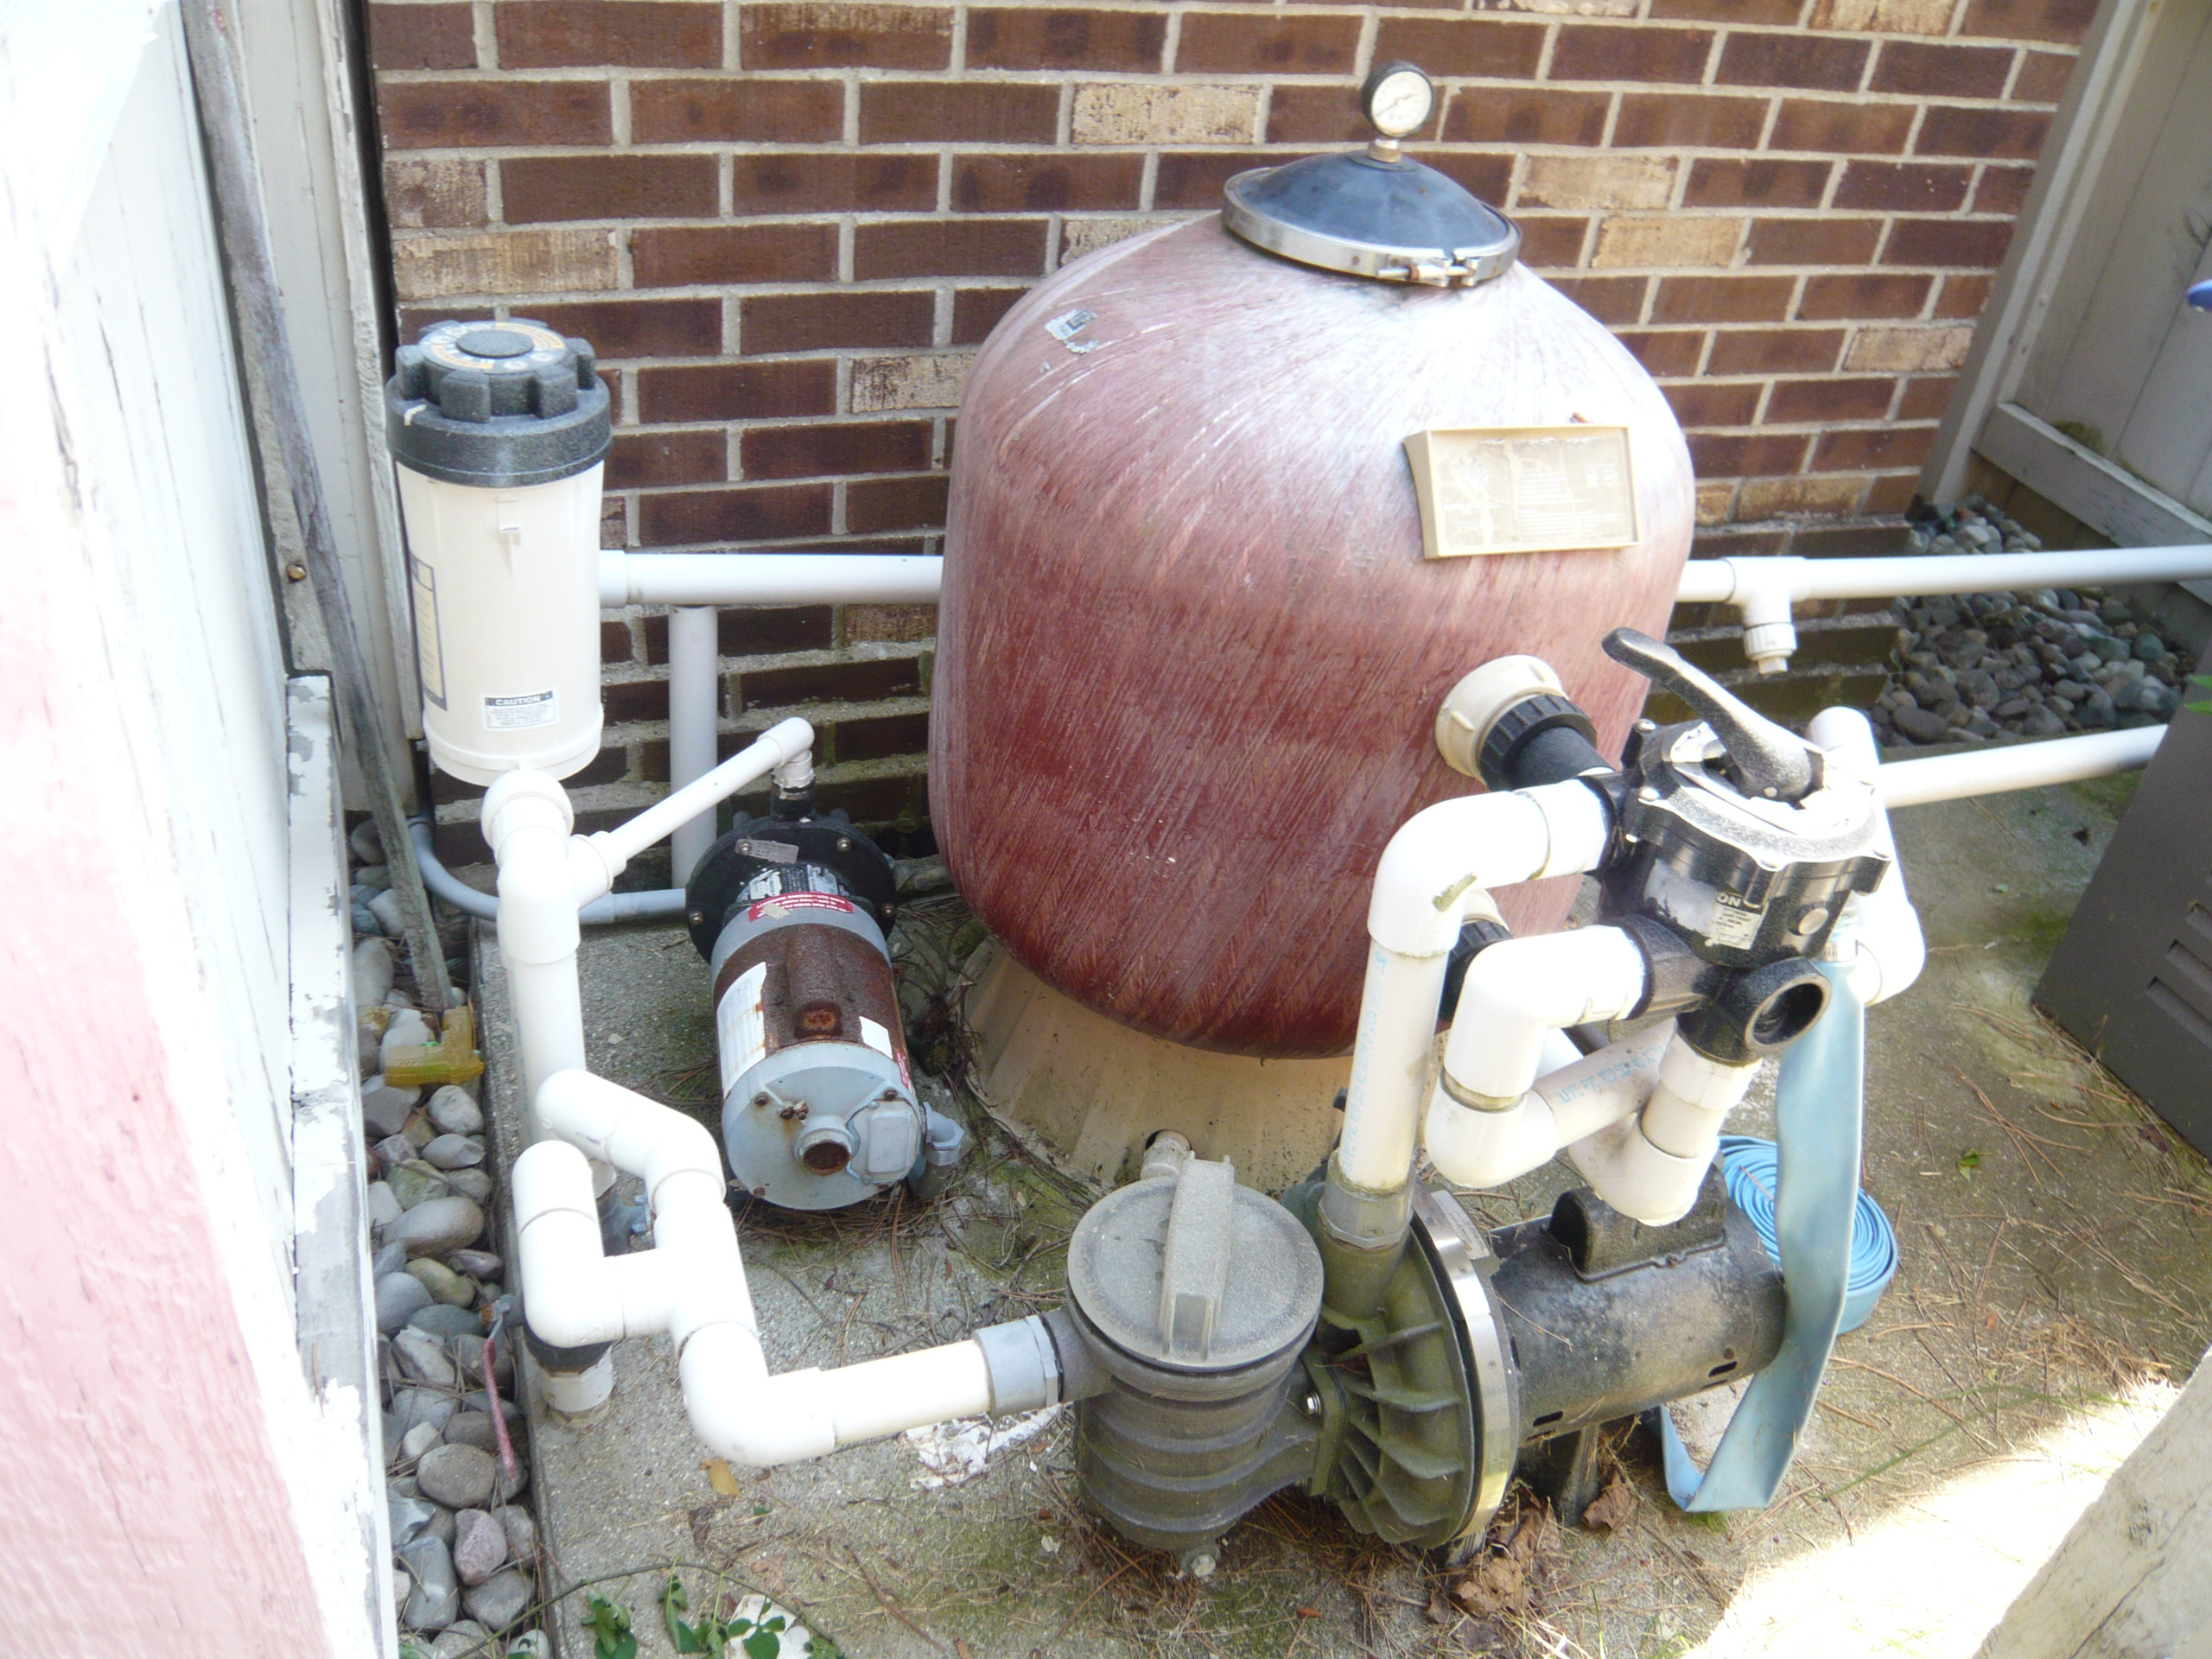 System With A Sidemount Multiport Valve And A Sand Filter